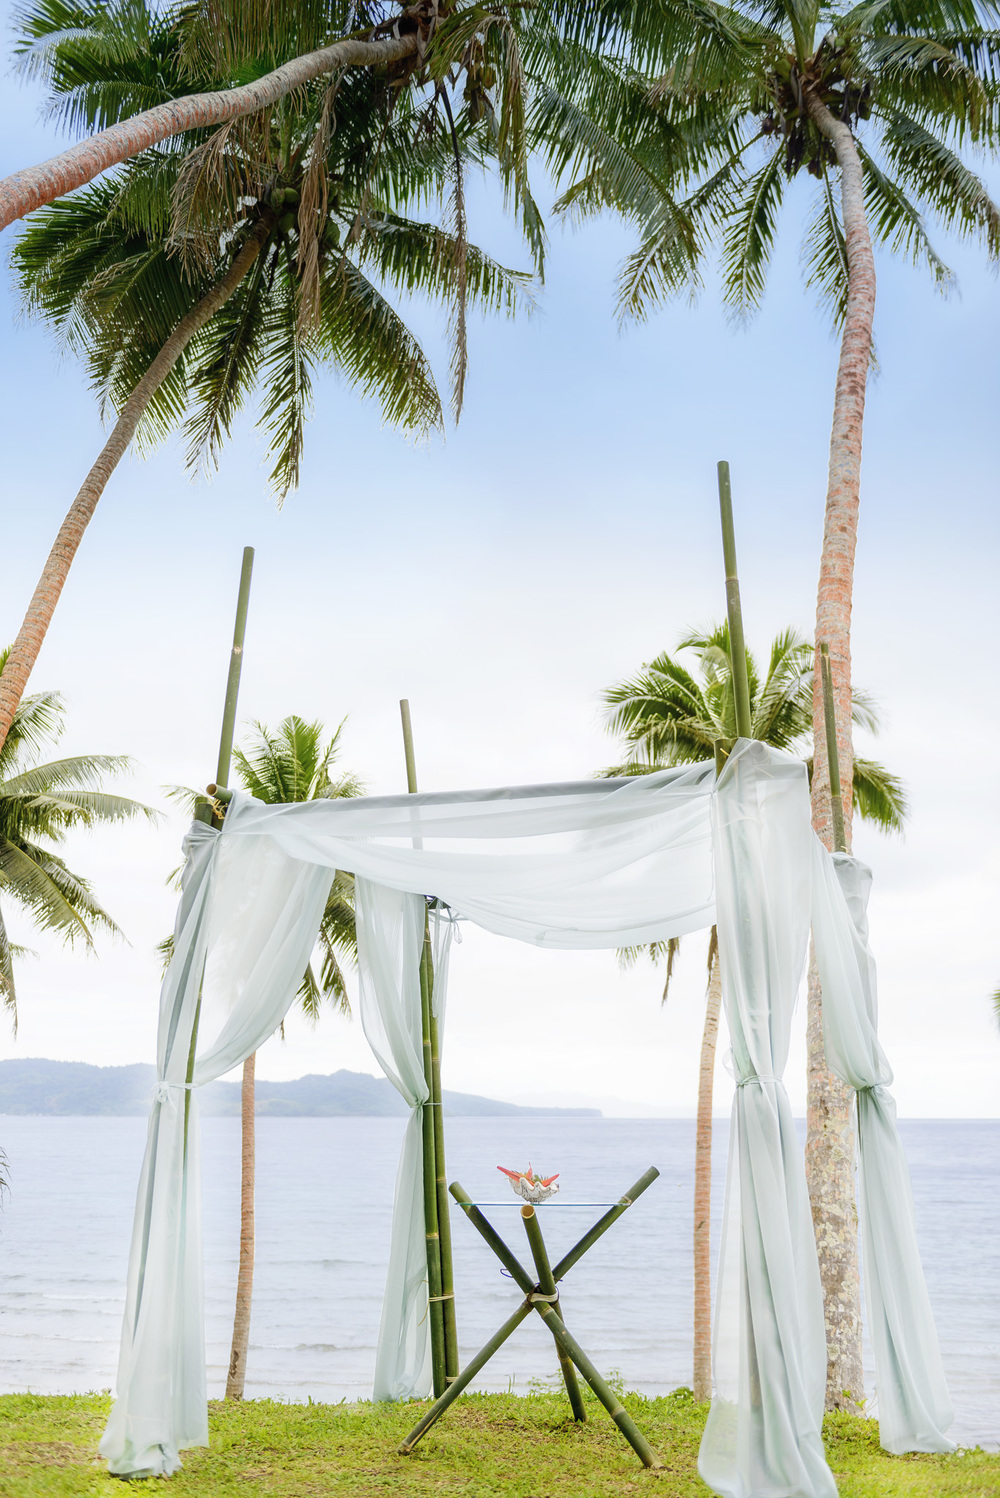 Remote Resort Fiji Islands - a Fiji beach wedding in tropical paradise